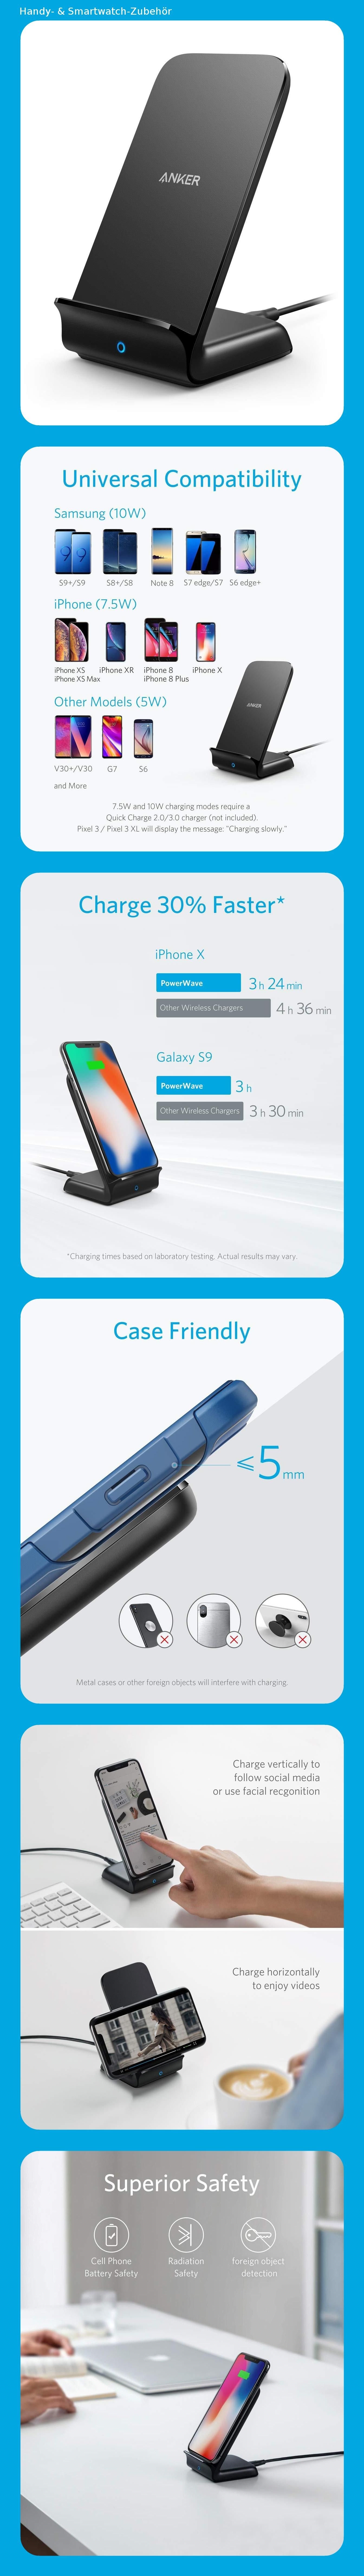 Anker Fast Wireless Charger Kabelloses Ladegerat Powerwave 7 5w 10w 5w Ladestander Fur Iphone Xs Max Xr Xs X Iphone 8 8 Plus Netzteile Samsung Iphone